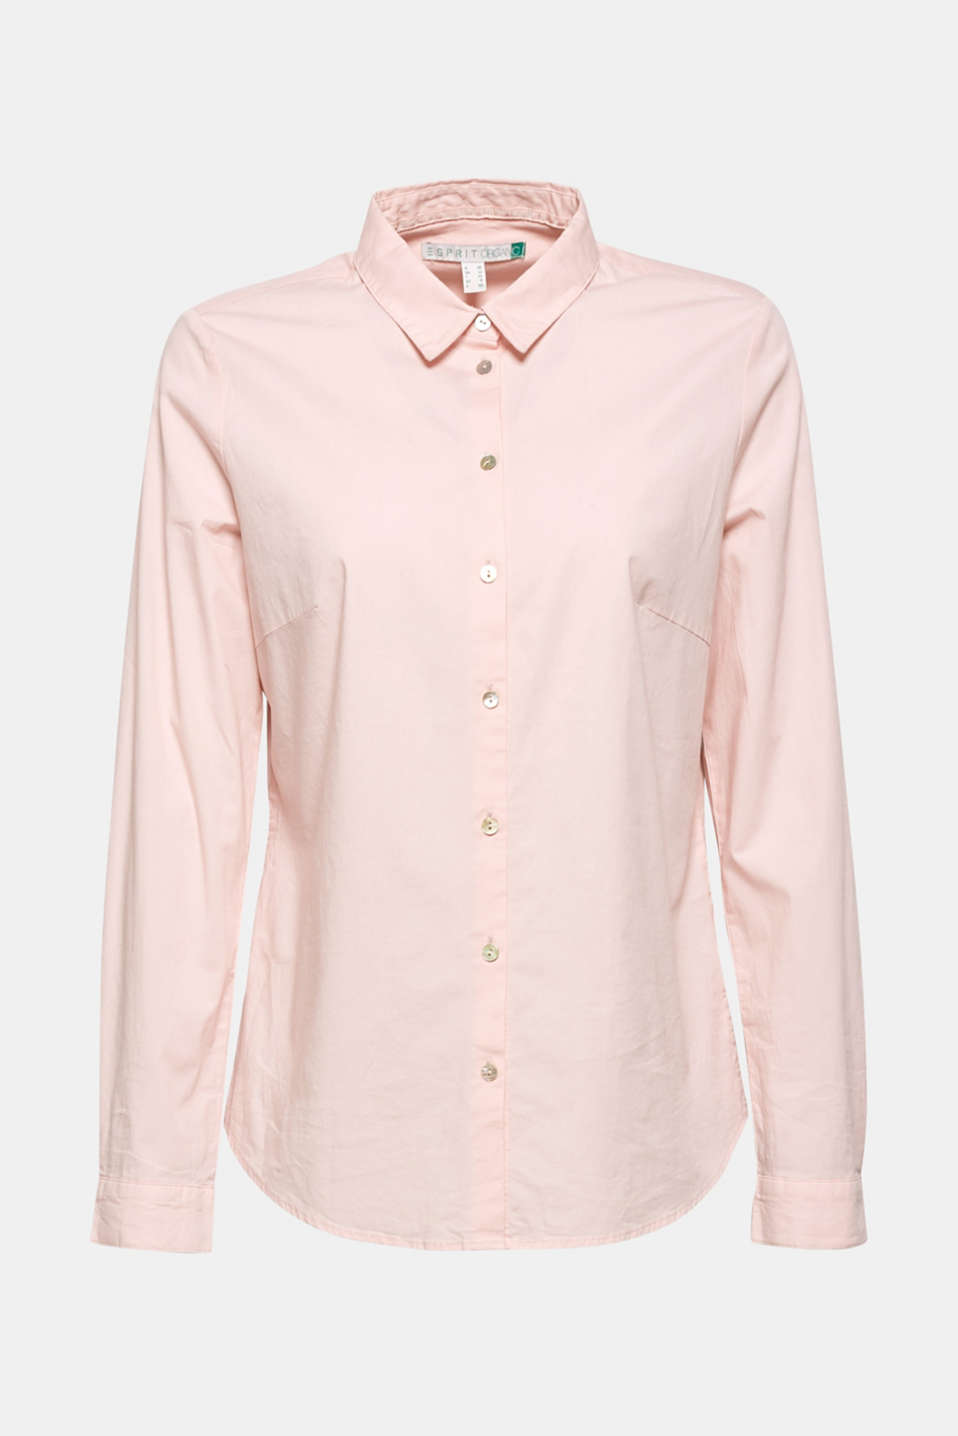 Blouses woven, LIGHT PINK, detail image number 7